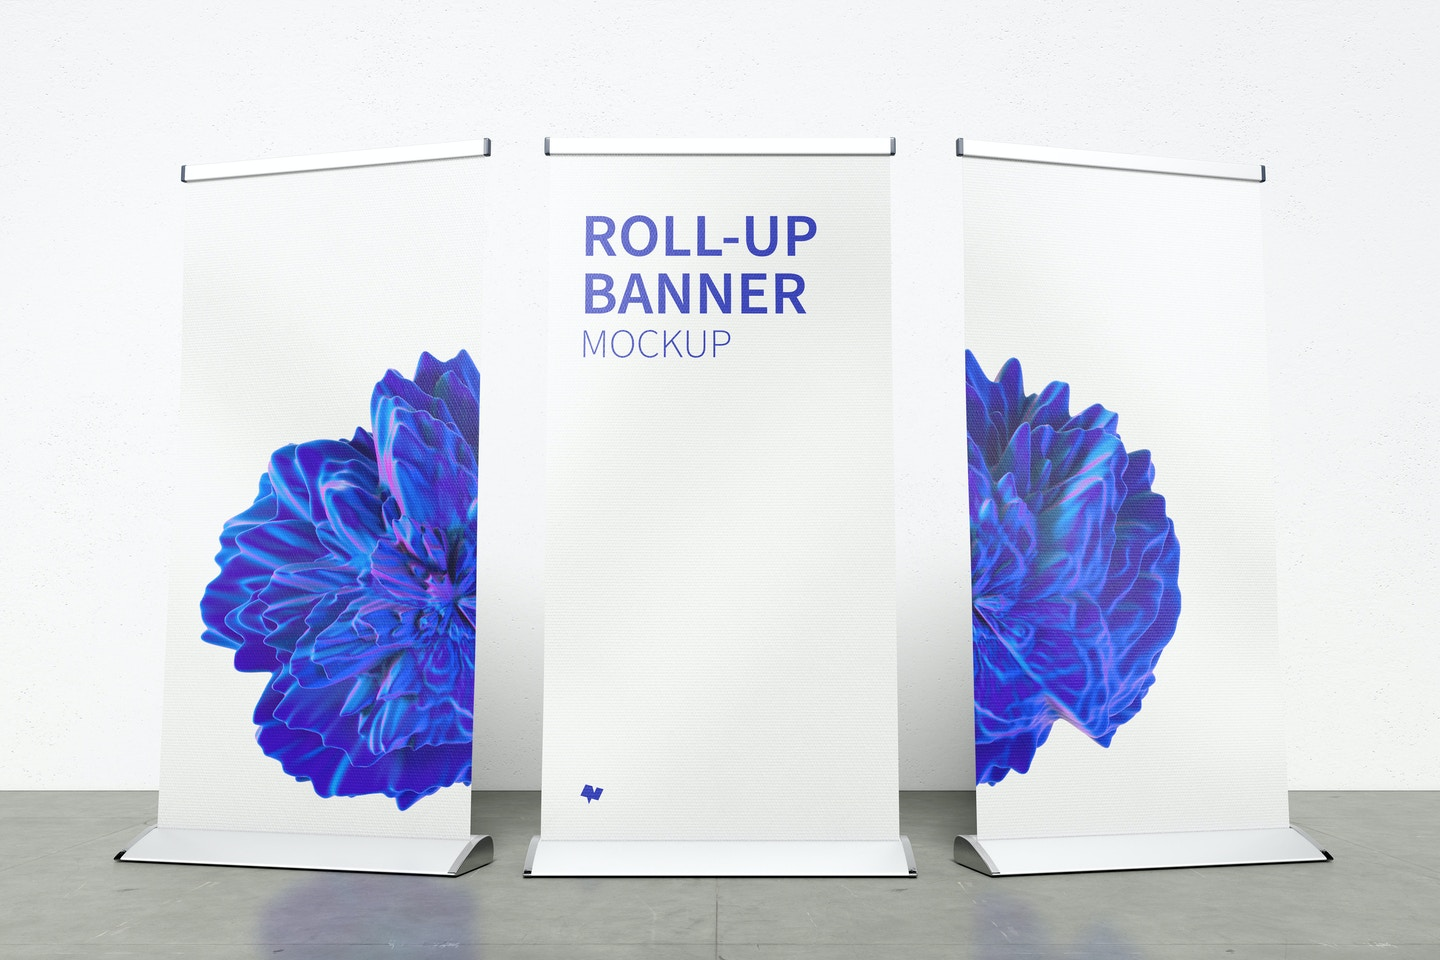 Standing Roll-Up Banners Mockup with a Background Wall 03